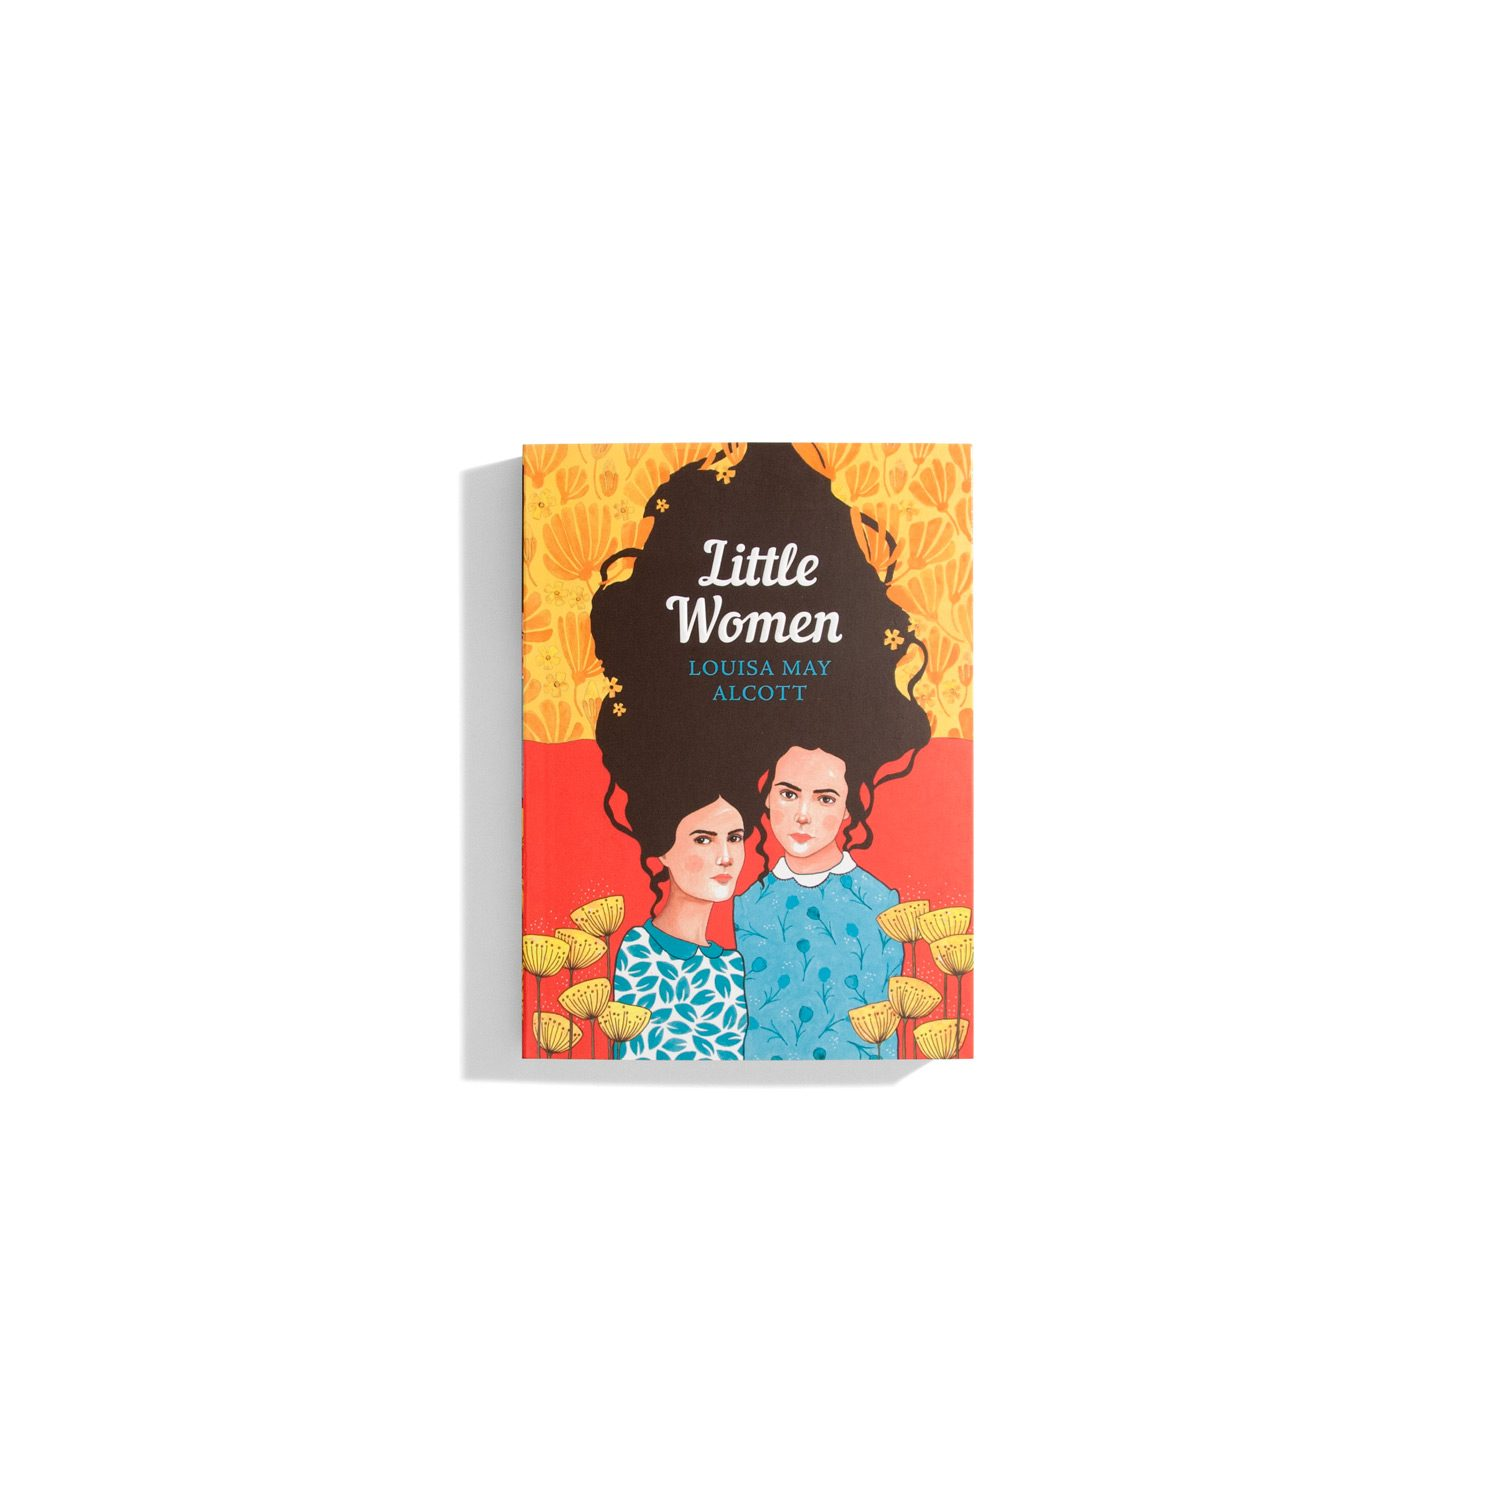 Little Women - Louisa May Alcott (PB)